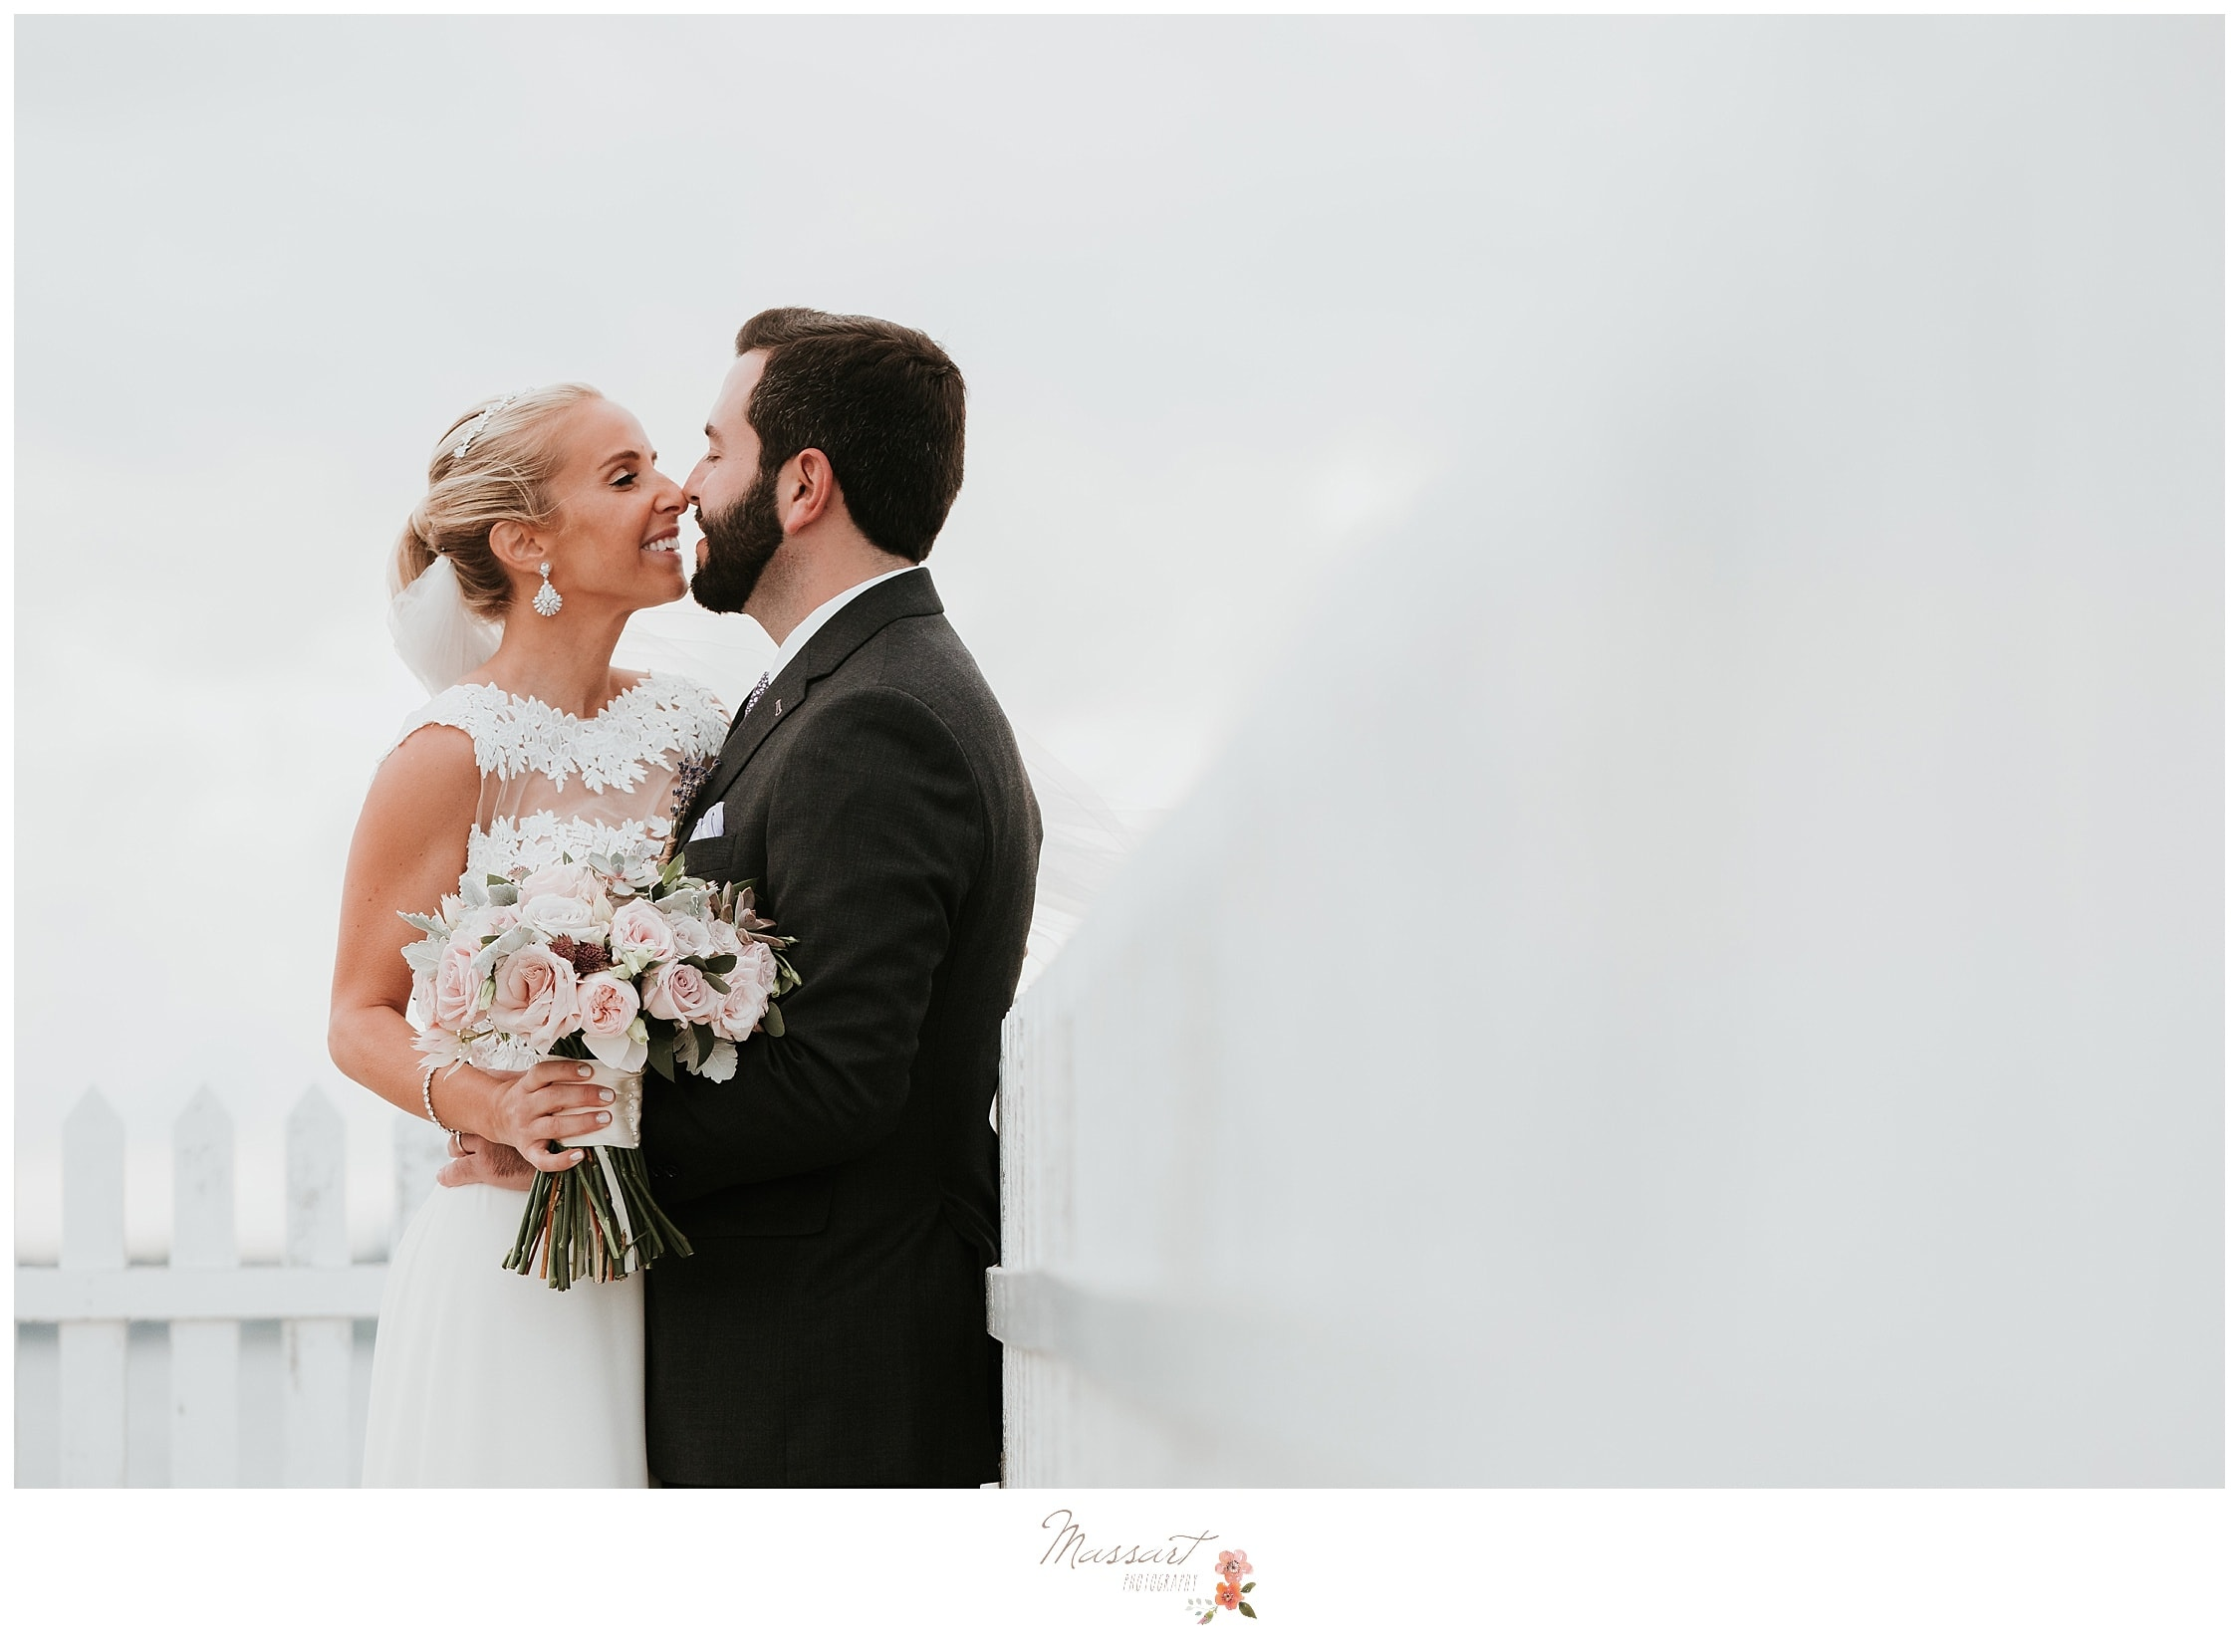 Romantic portrait of the bride and groom with her veil floating in the wind photographed by Massart Photography Rhode Island